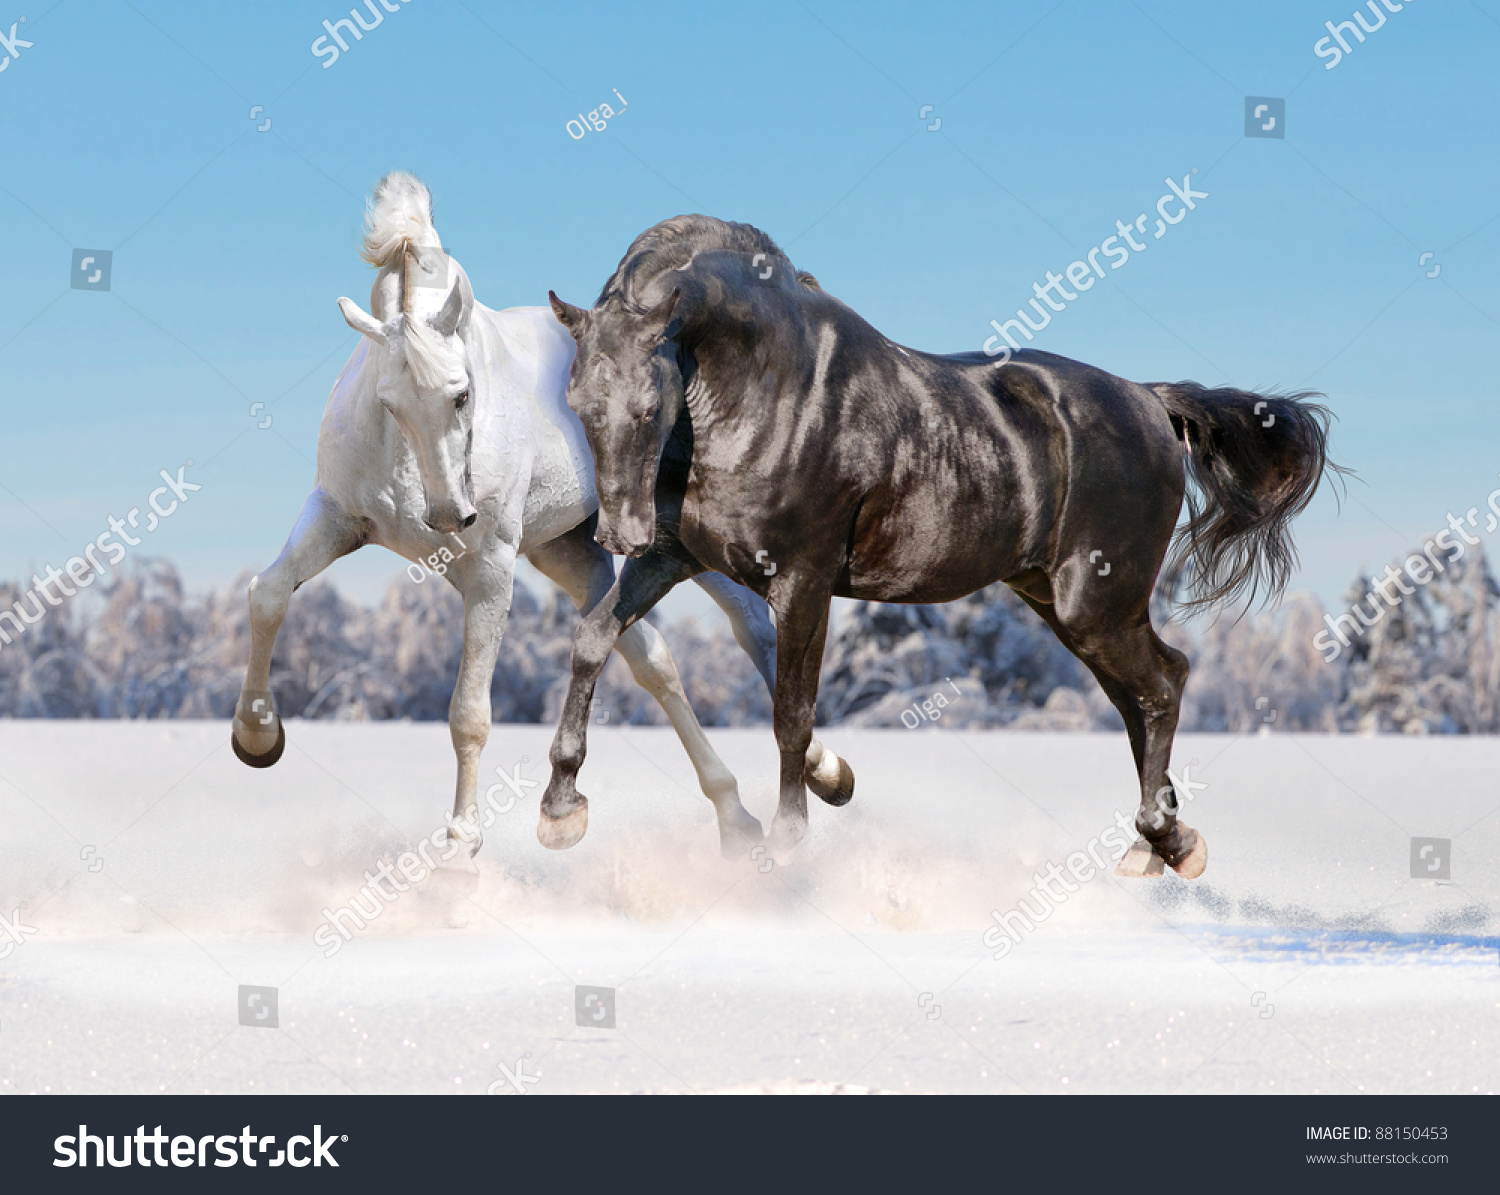 Black and white horses running